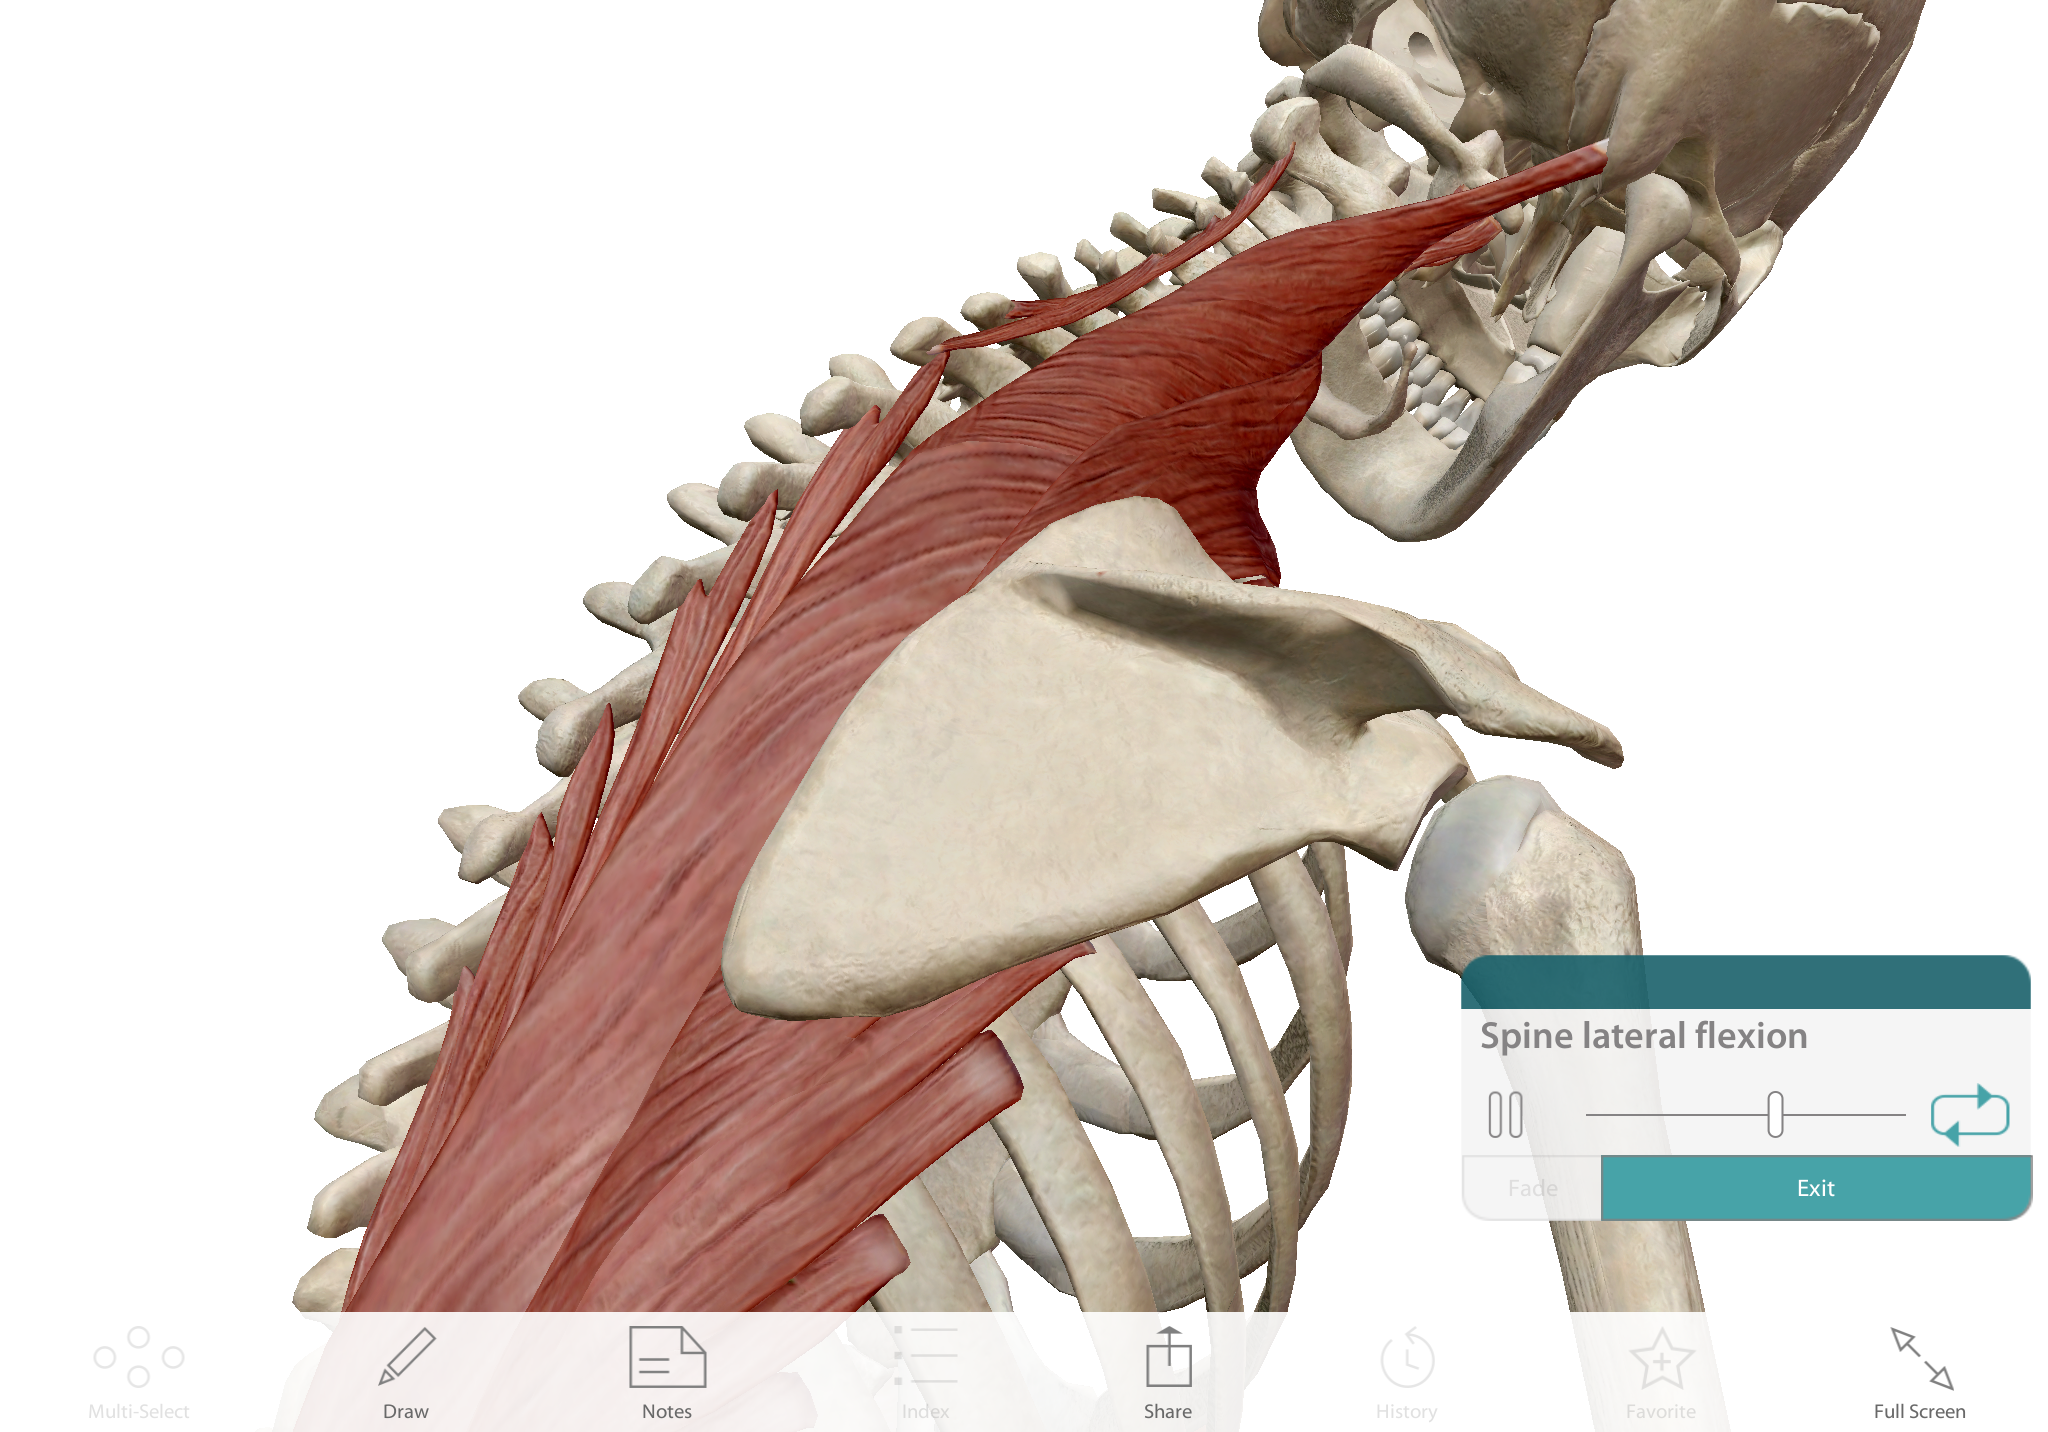 Lateral flexion of the spine